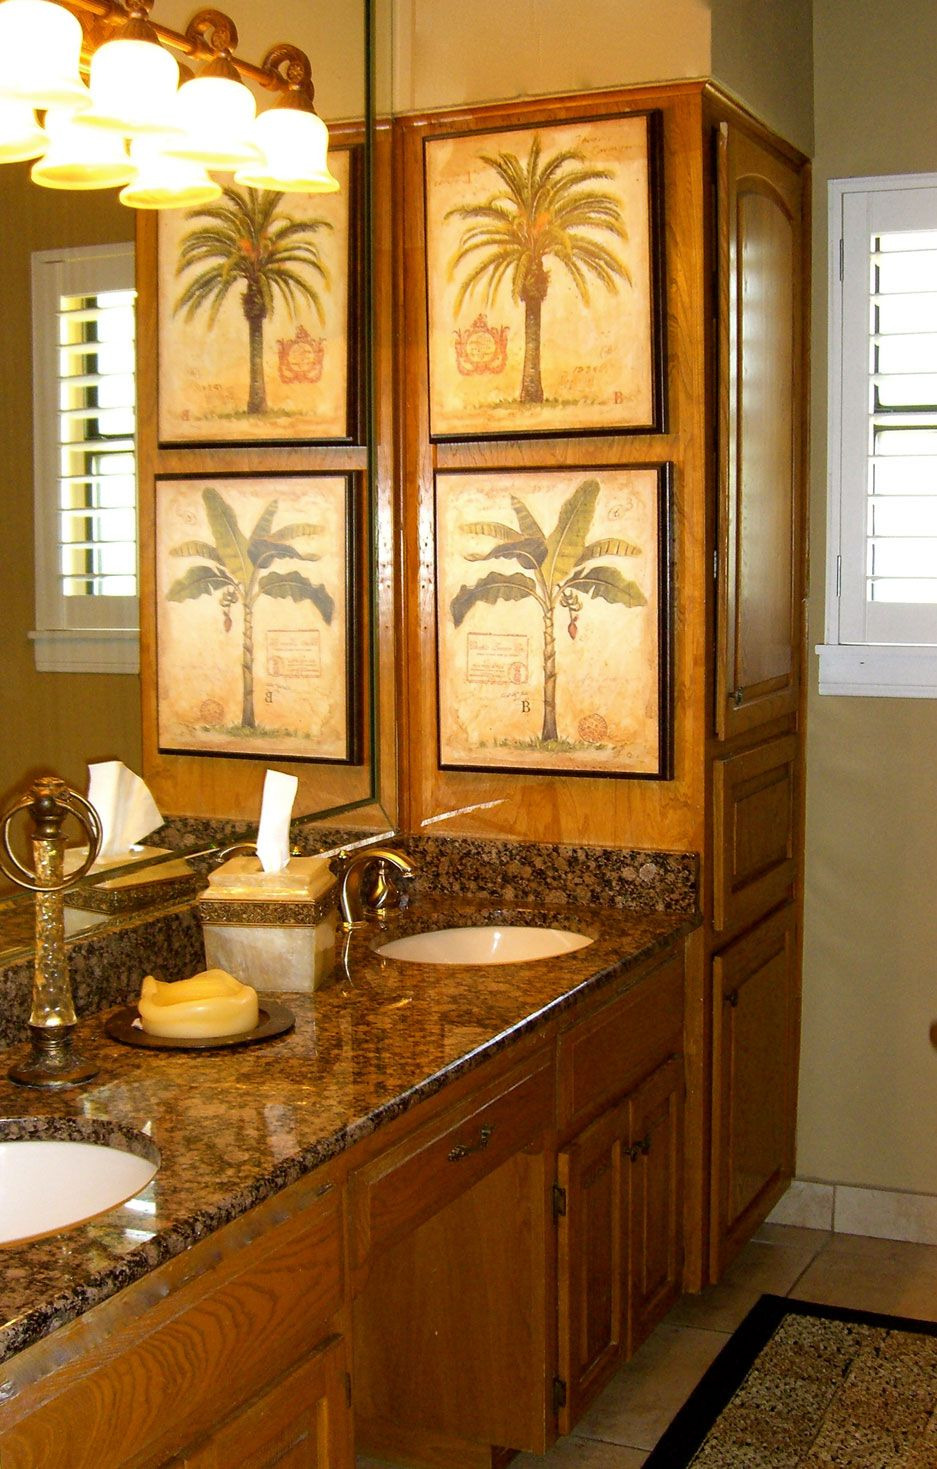 Palm Tree Bathroom Decor Awesome Mt Bathroom without the Palm Tree Pictures Perfect